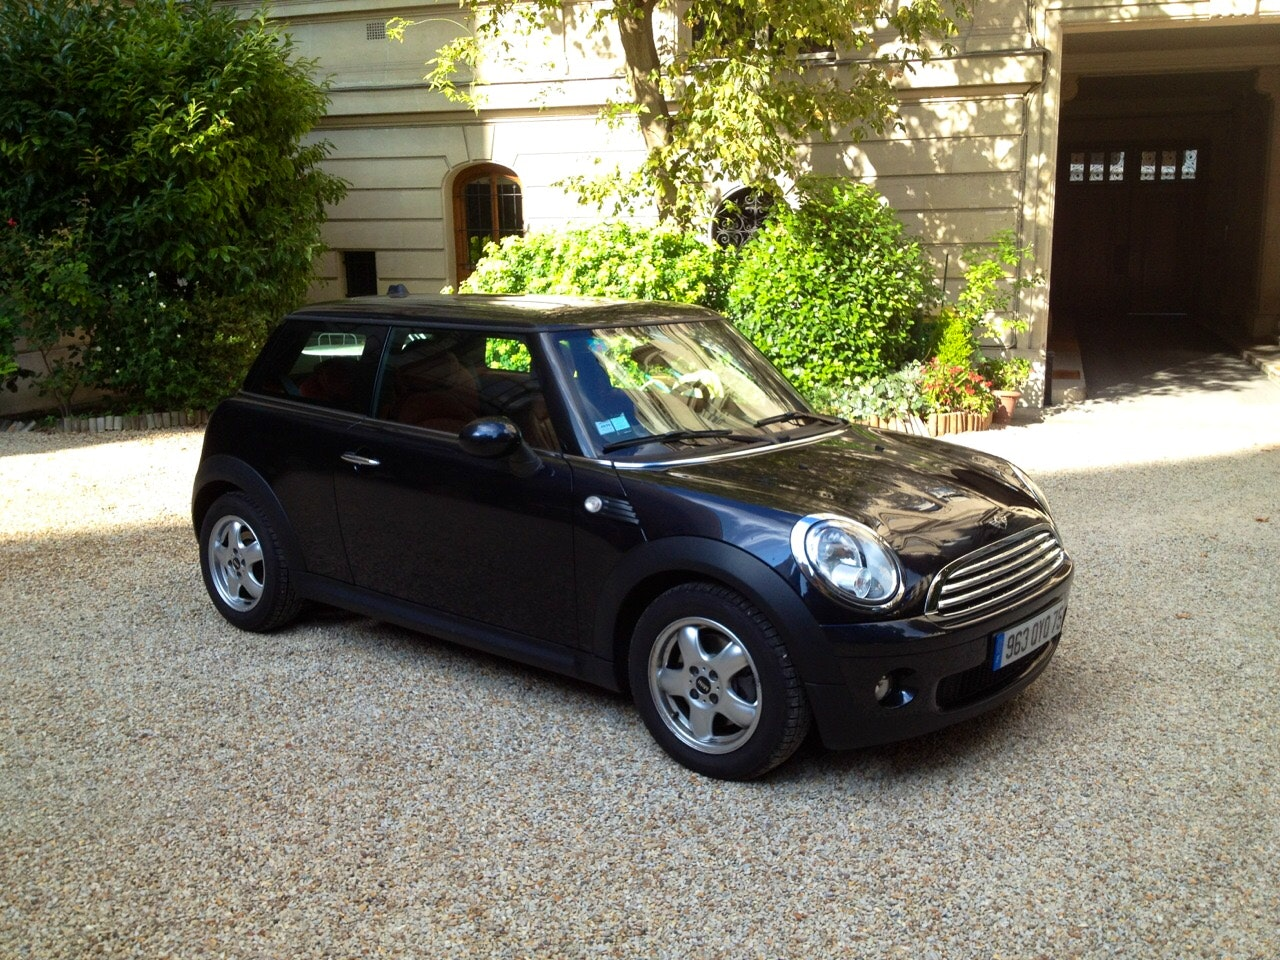 Mini cooper essence , full option , 2007, Essence, automatique - Mini-citadine Paris (75)